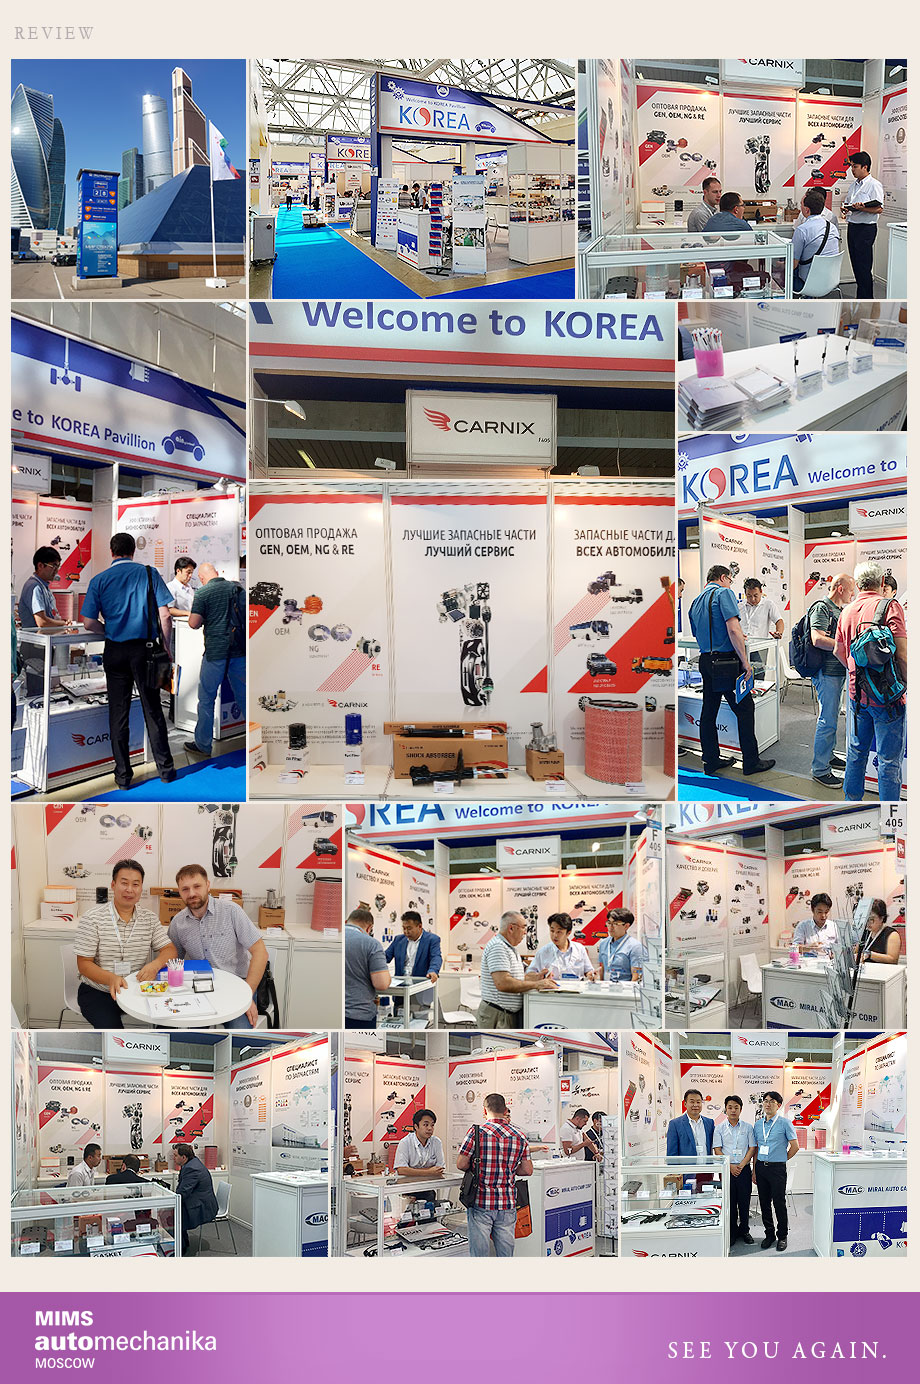 Review of MIMS Automechanika Moscow 2017 - Miral Auto Camp Corp.